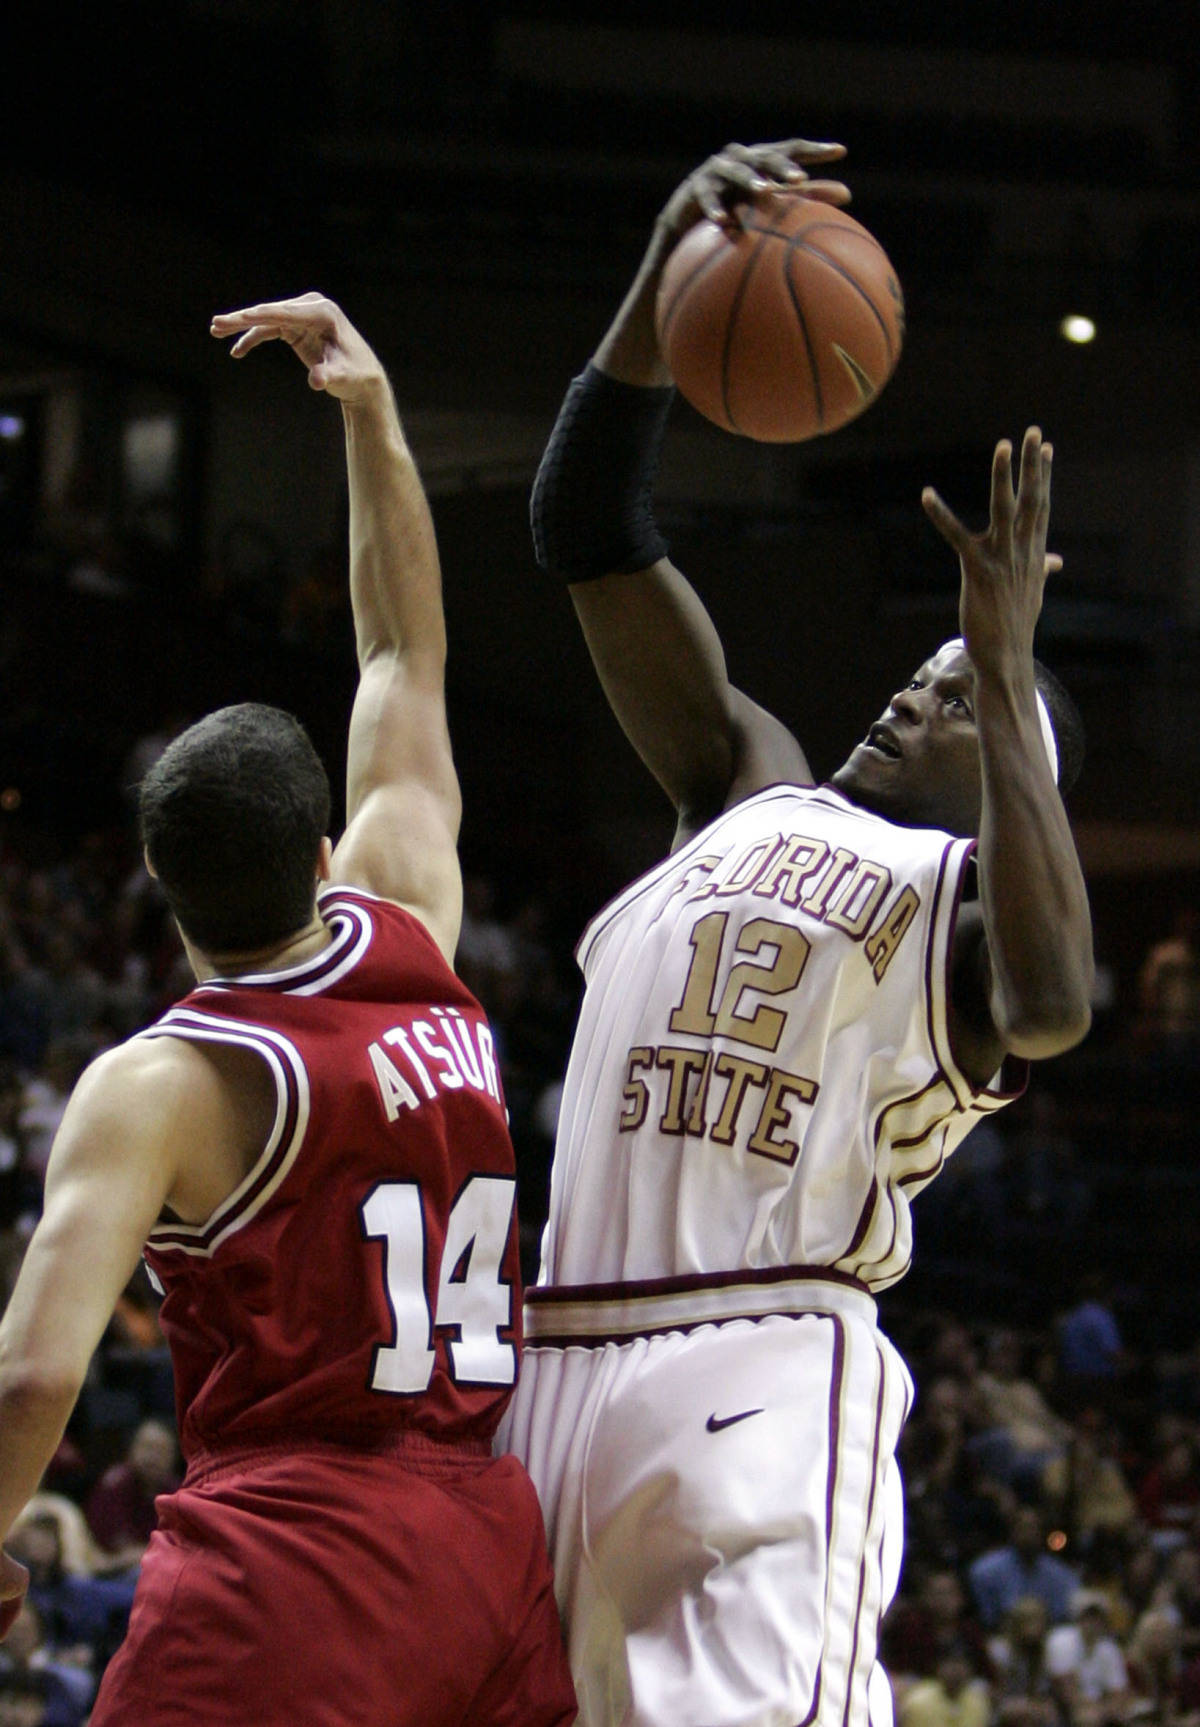 Florida State's Al Thornton (12) pulls down a first-half rebound against North Carolina State's Engin Atsur (14) during a college basketball game, Saturday, Feb. 24, 2007, in Tallahassee, Fla. Thornton, in his last home game, led the Seminoles with 17 points in their 78-52 win. (AP Photo/Brandon Goodman)